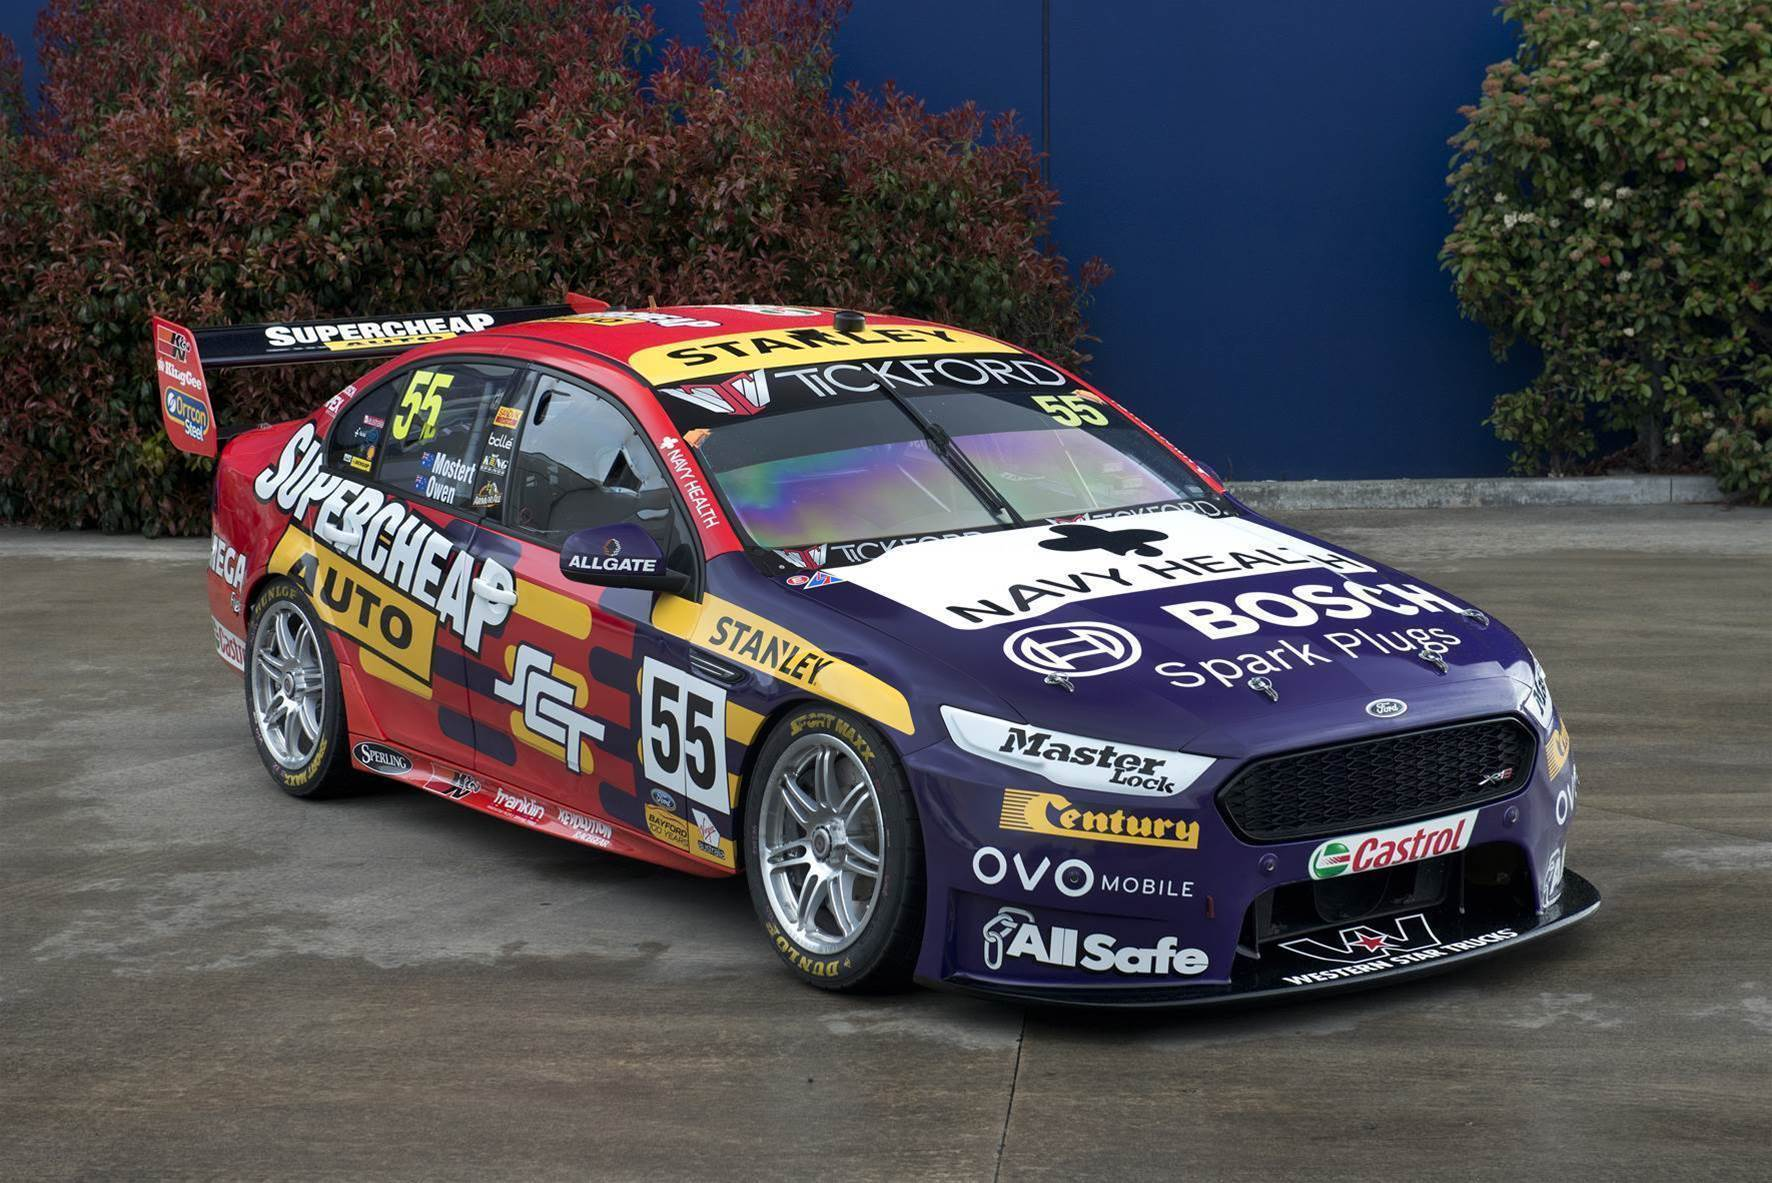 PRA honours Supercheap history with retro round livery